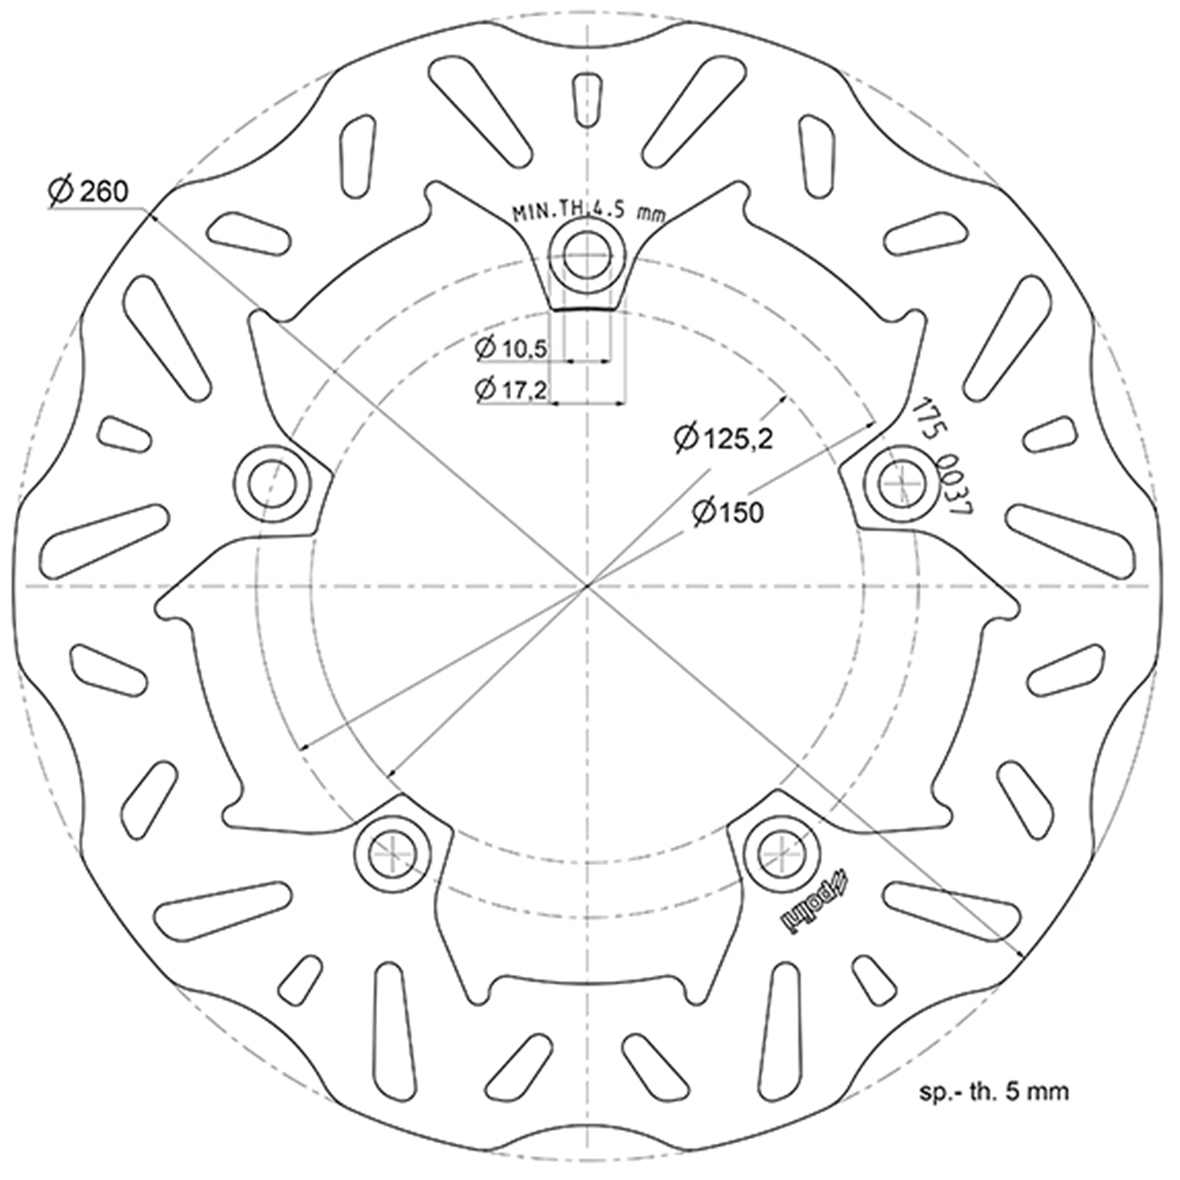 Product Image for 'Brake Disc POLINITitle'